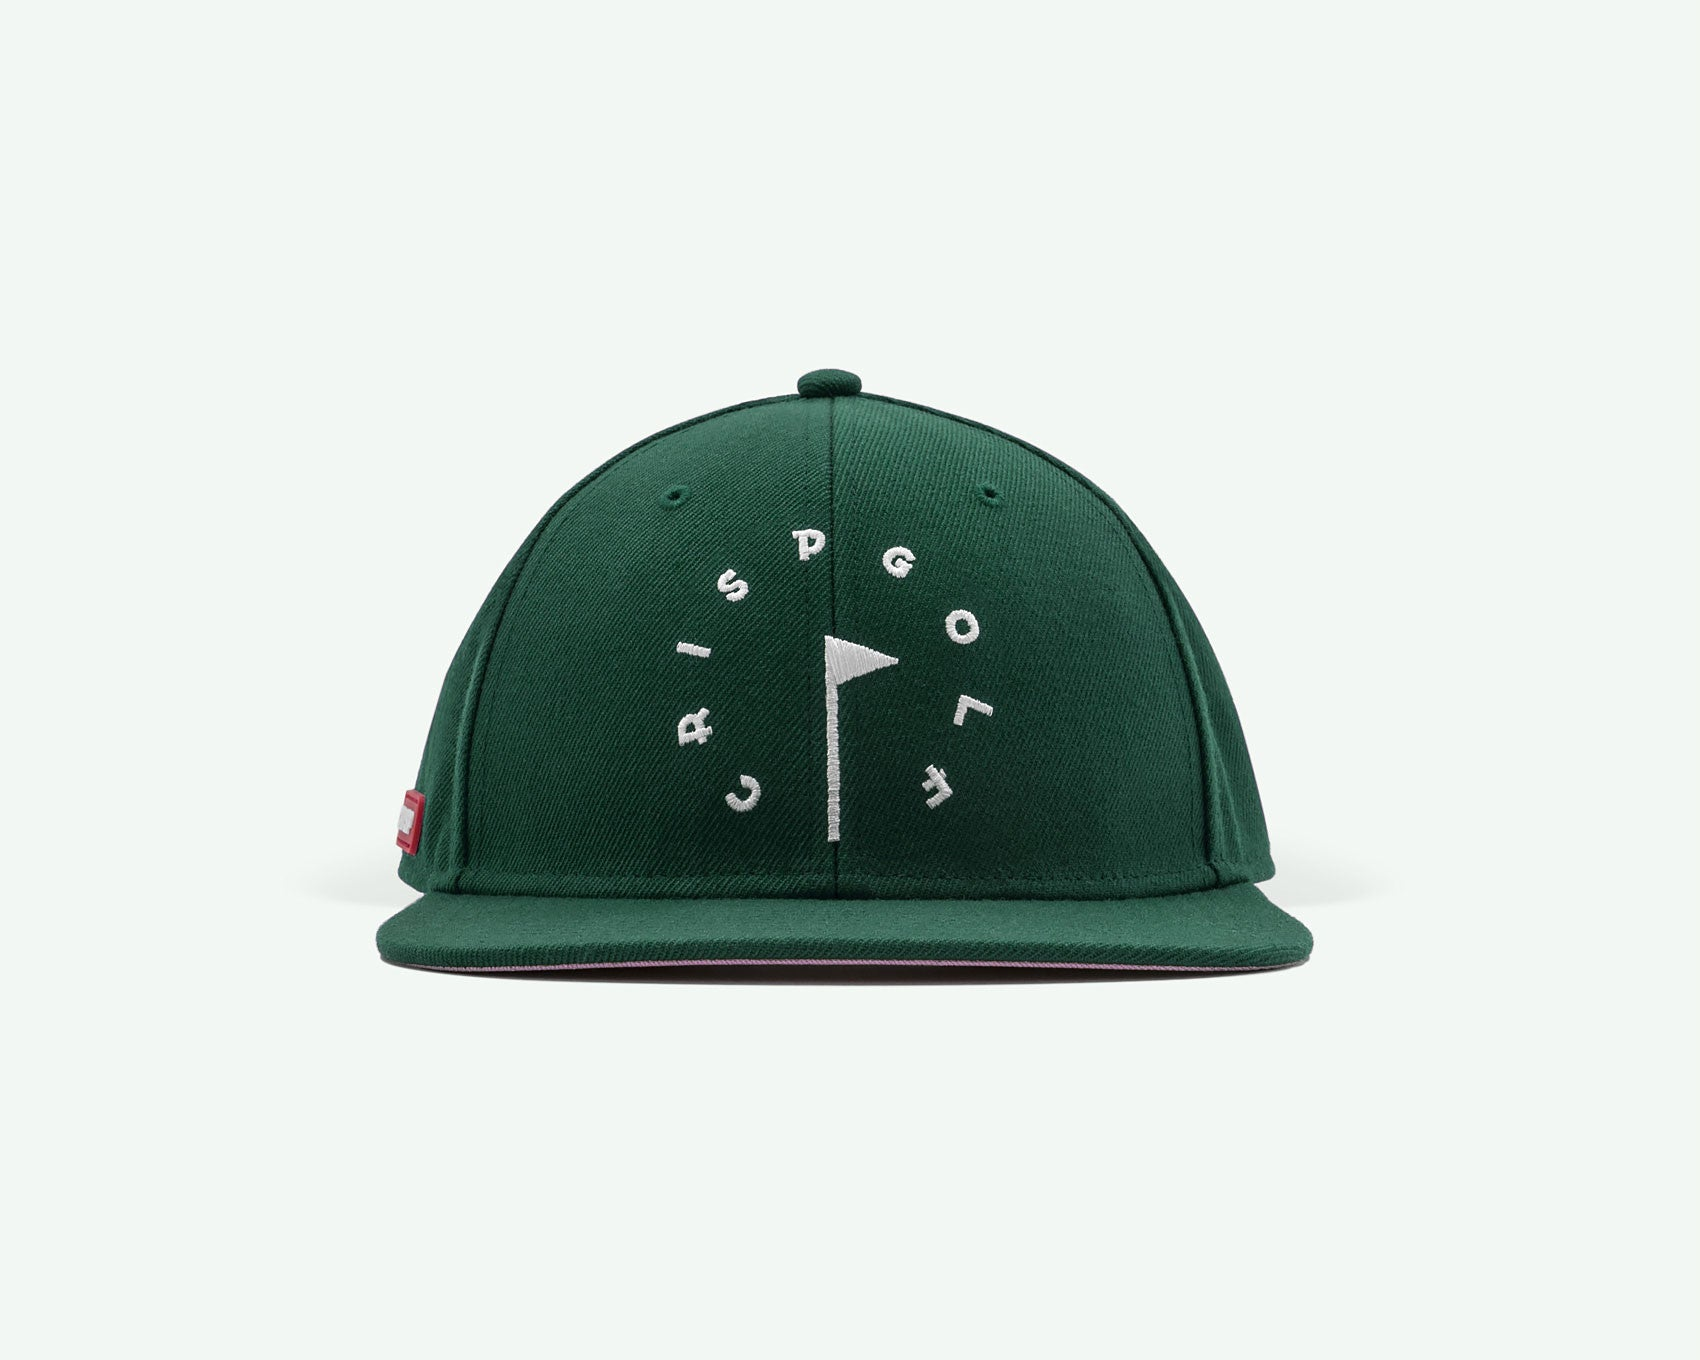 101 series burgundy racing green, structured 6-panel golf cap with premium wool blend fabric, leather strap and branded white buckle.